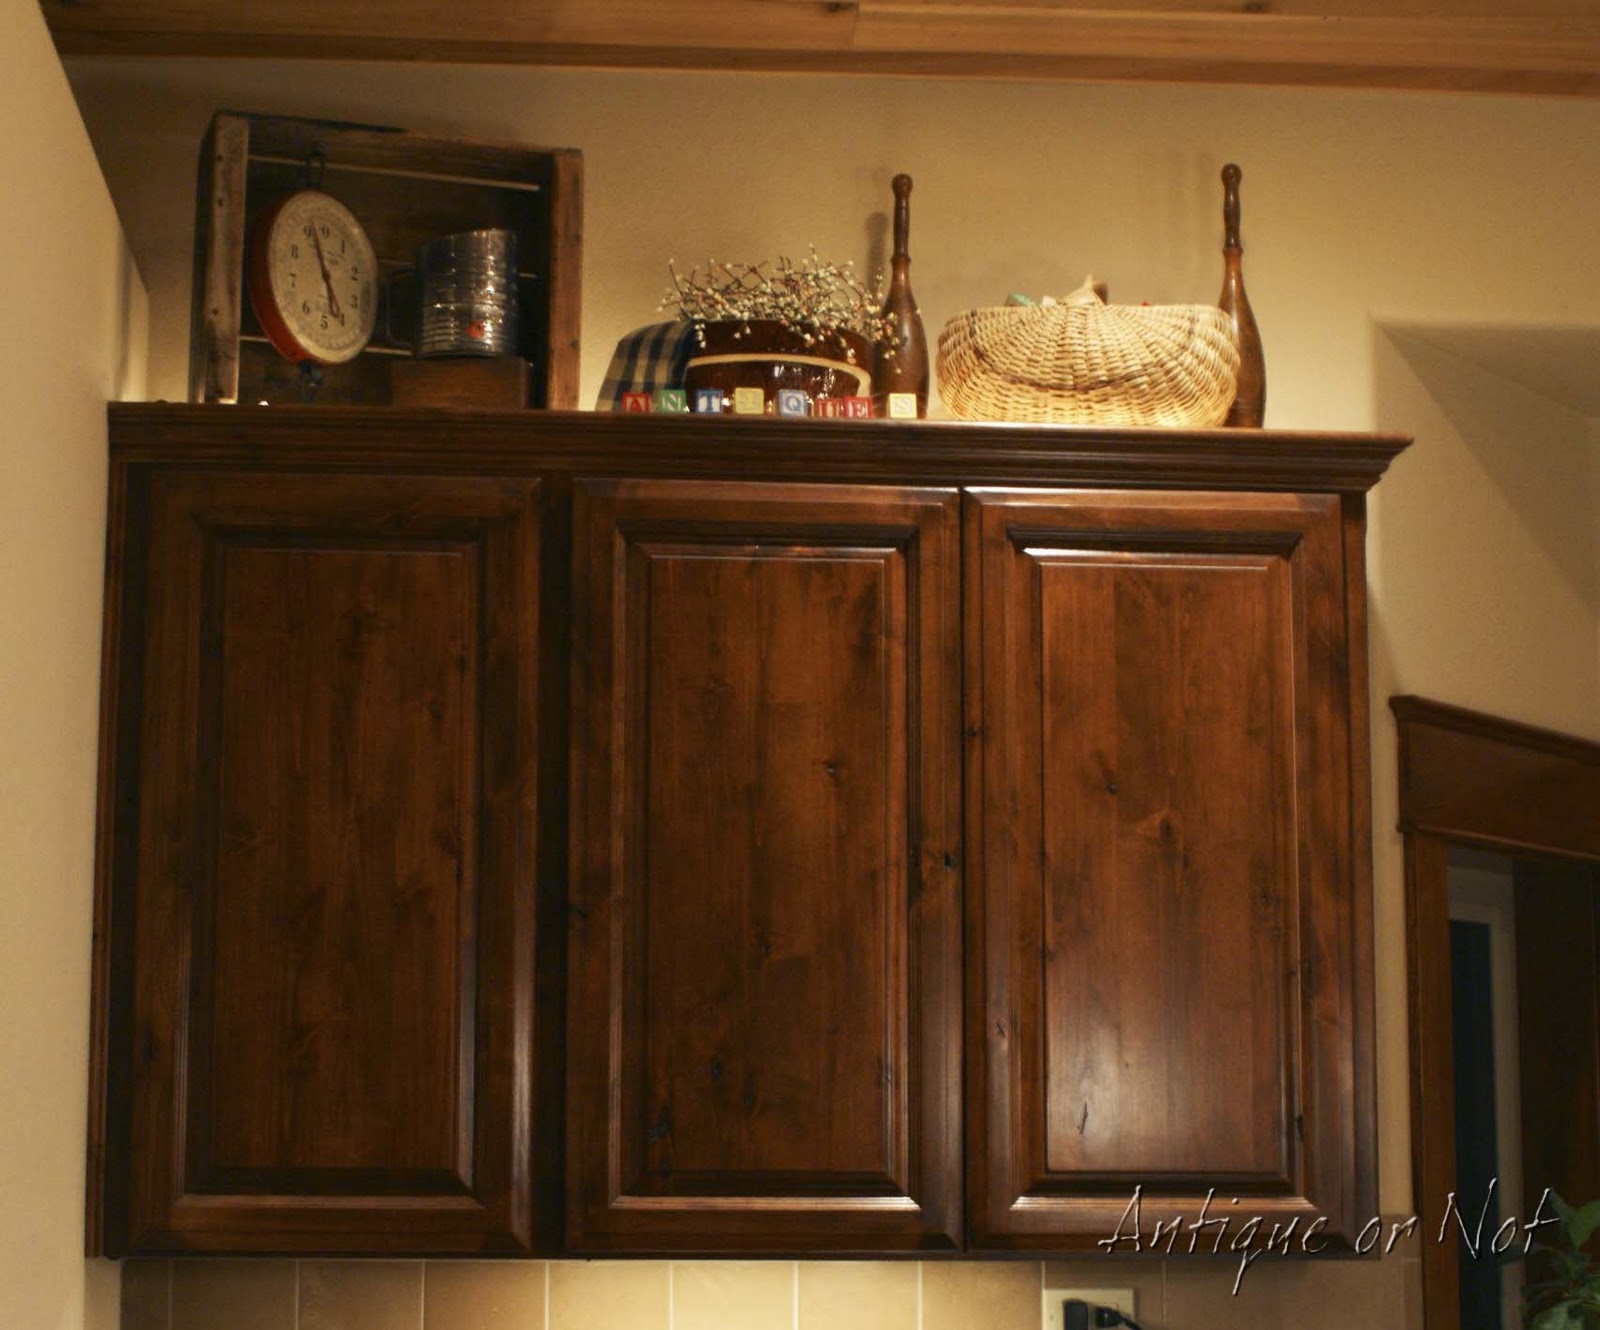 Antique or not decorating above your cabinets Design ideas for above kitchen cabinets